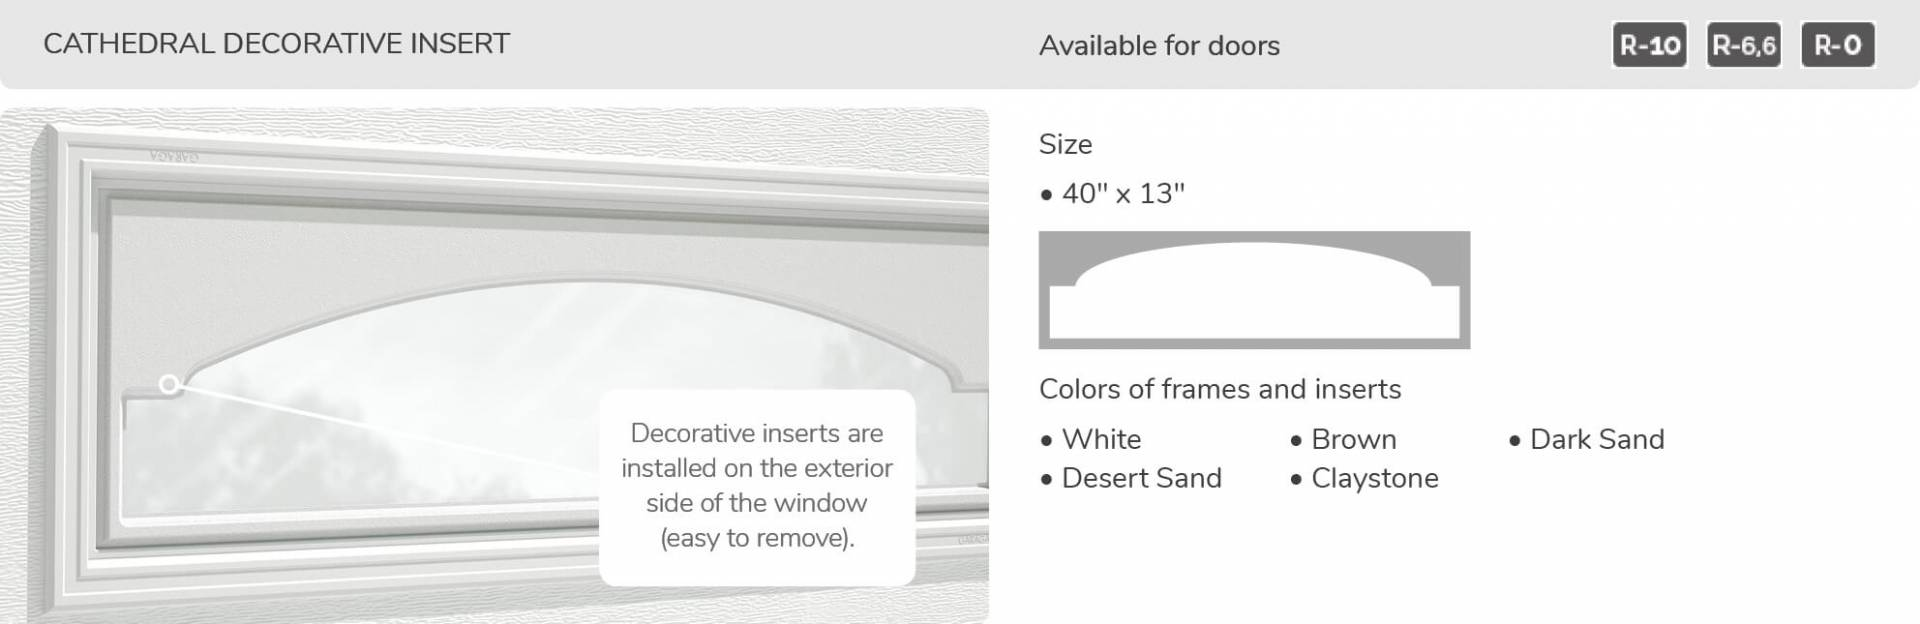 "Cathedral Decorative Insert, 40"" x 13"", available for doors R-10, R-6.6, R-0"